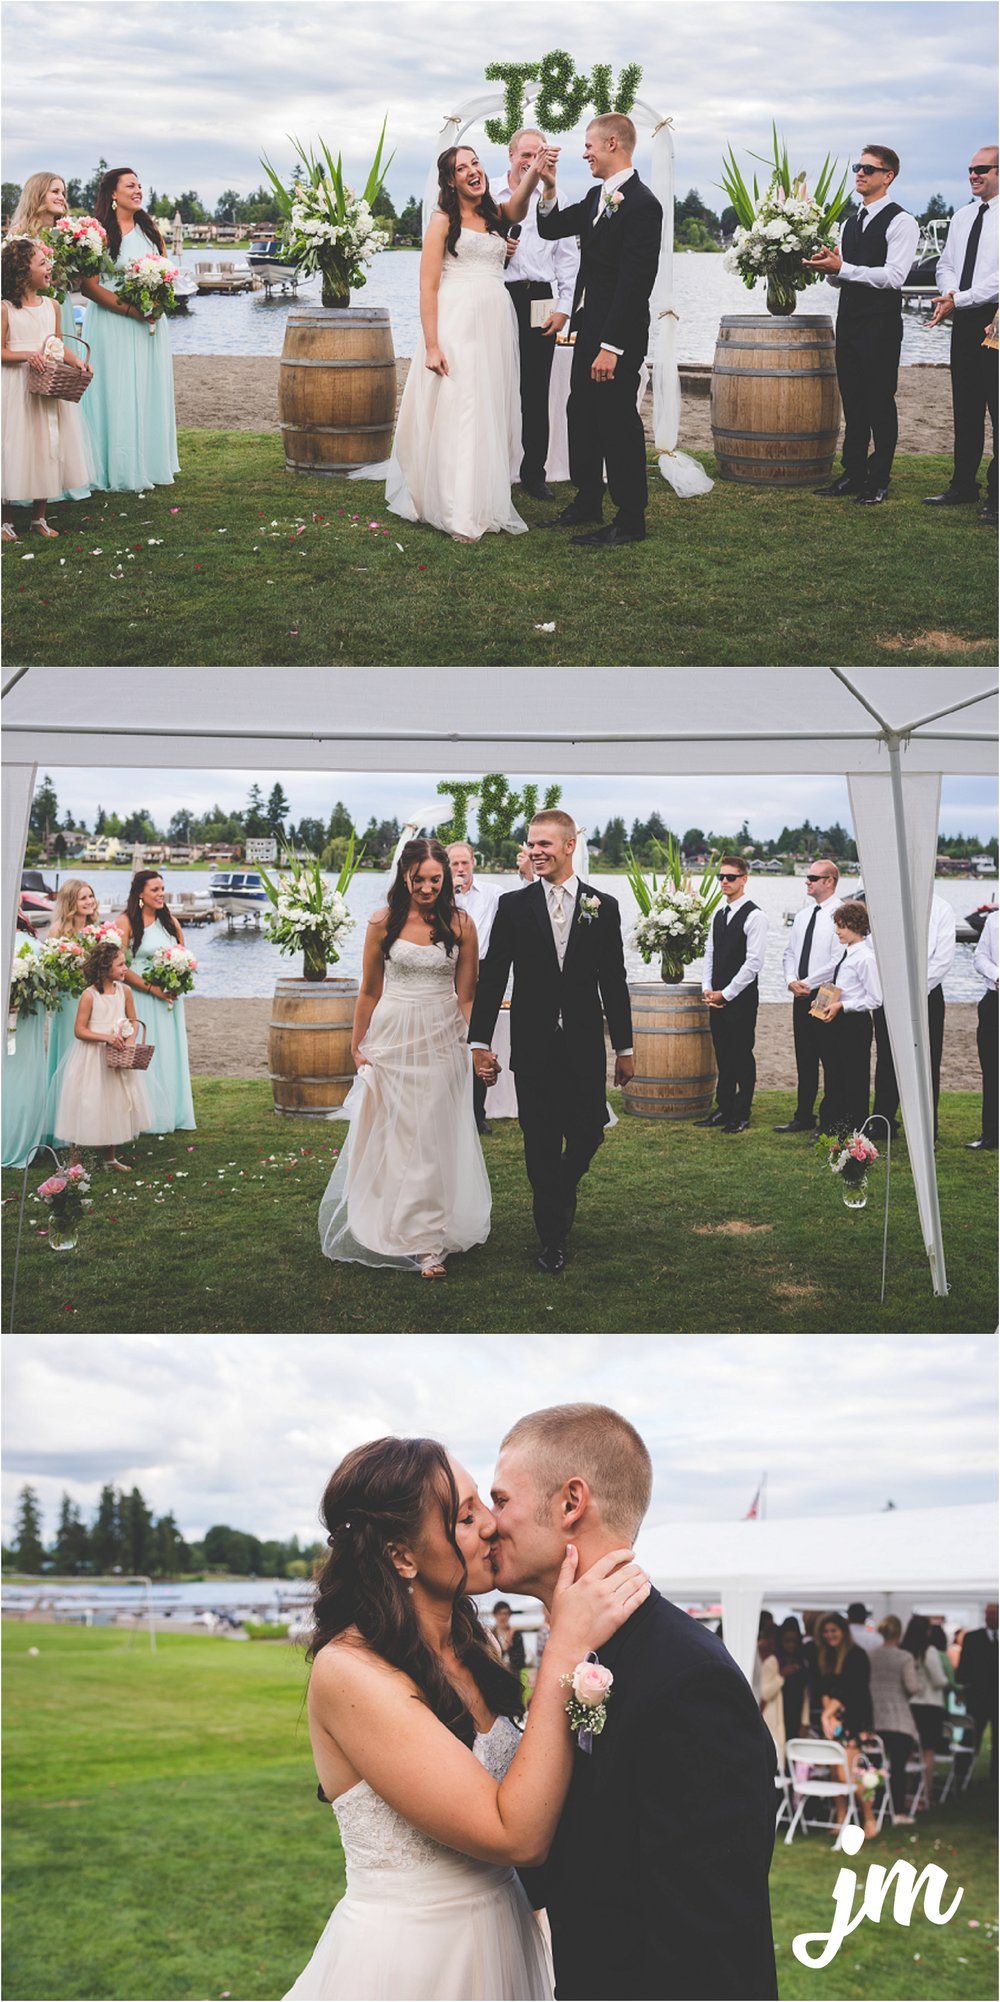 jannicka-mayte-intimate-backyard-lake-wedding-kent-wa-pacific-northwest-wedding-photographer_0052.jpg